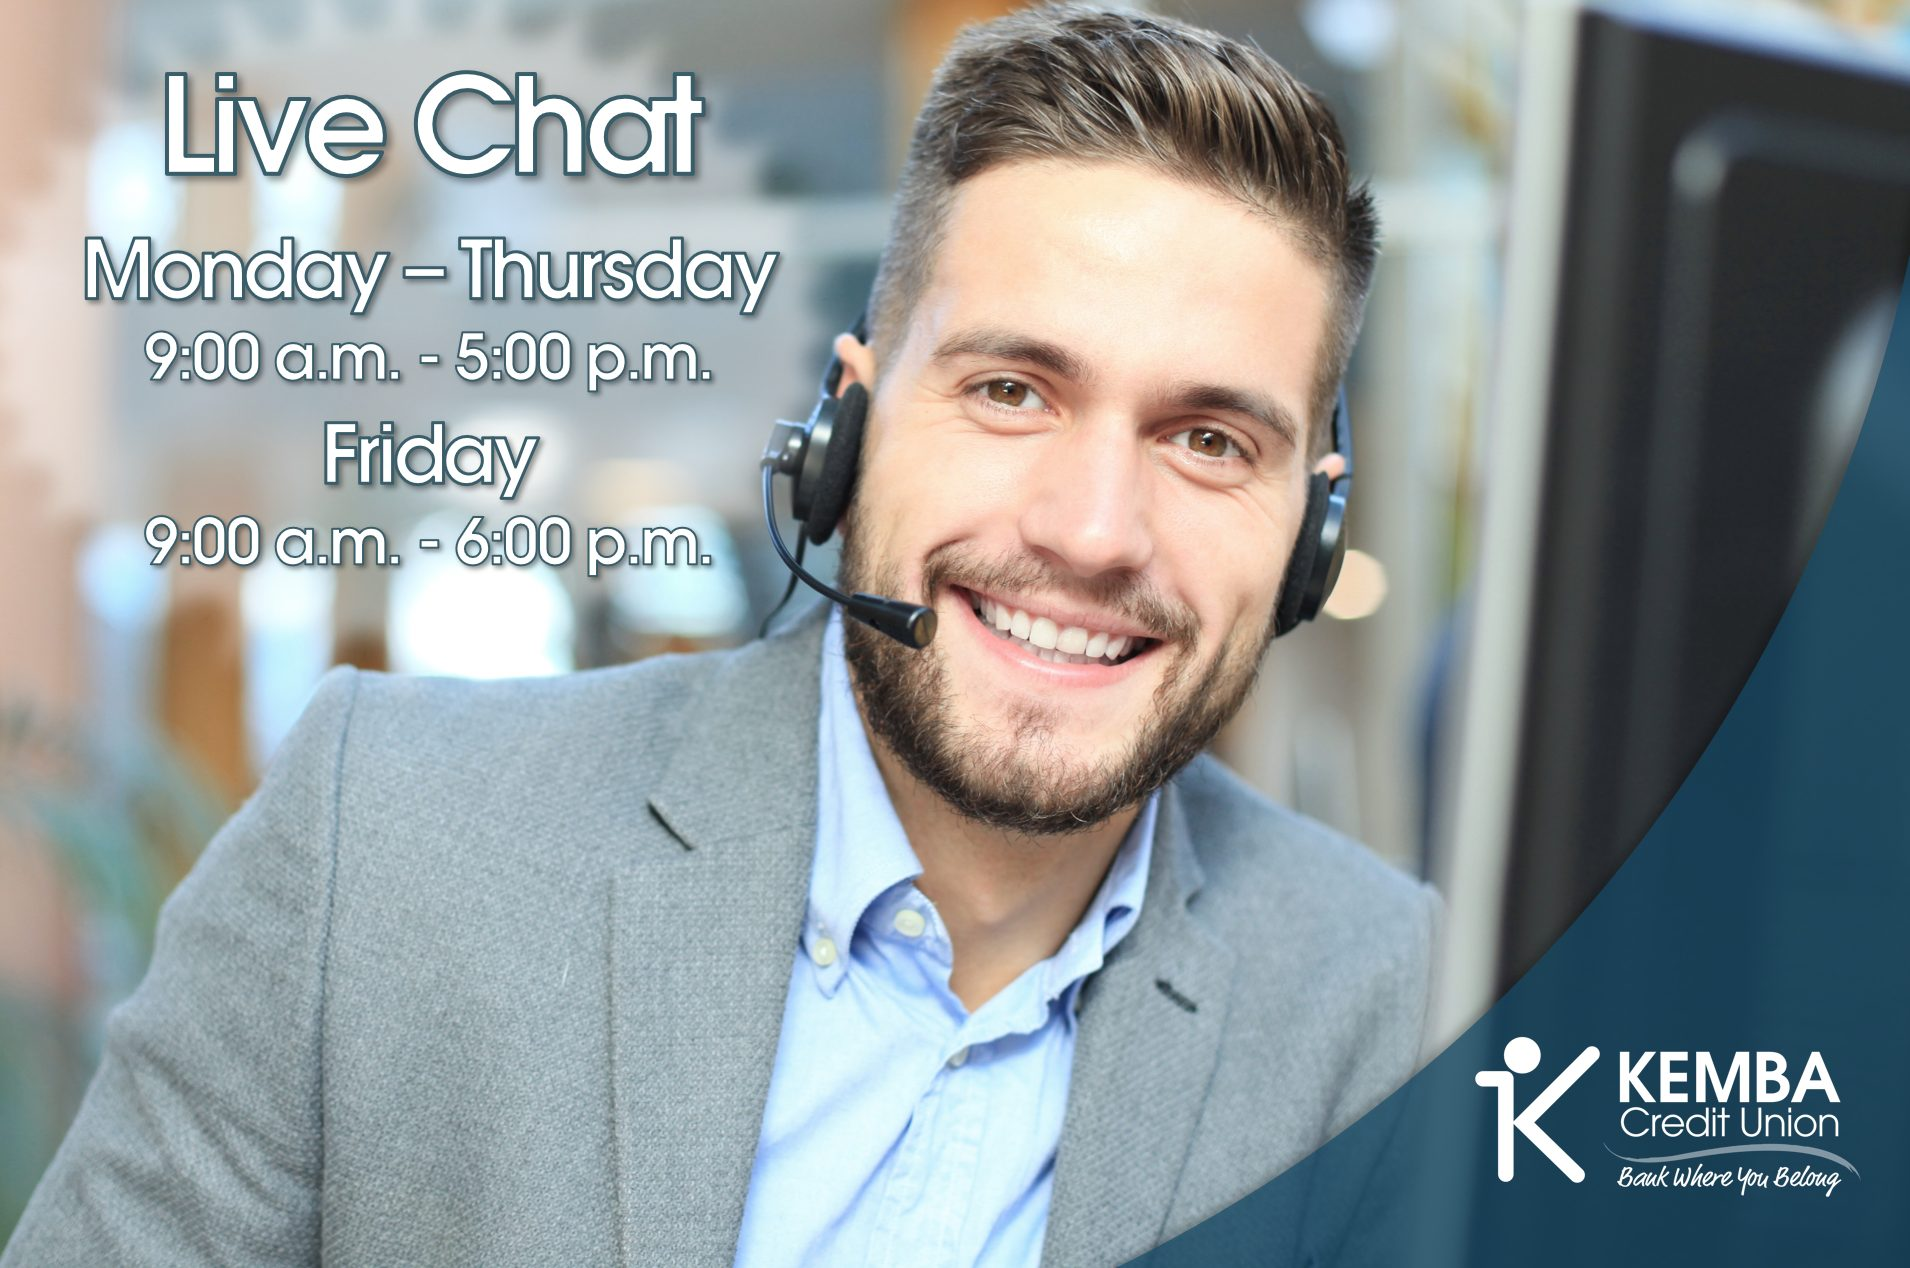 Live Chat M-Th 9:00 a.m. - 5:00 p.m. and Friday 9:00 a.m. - 6:00 p.m.